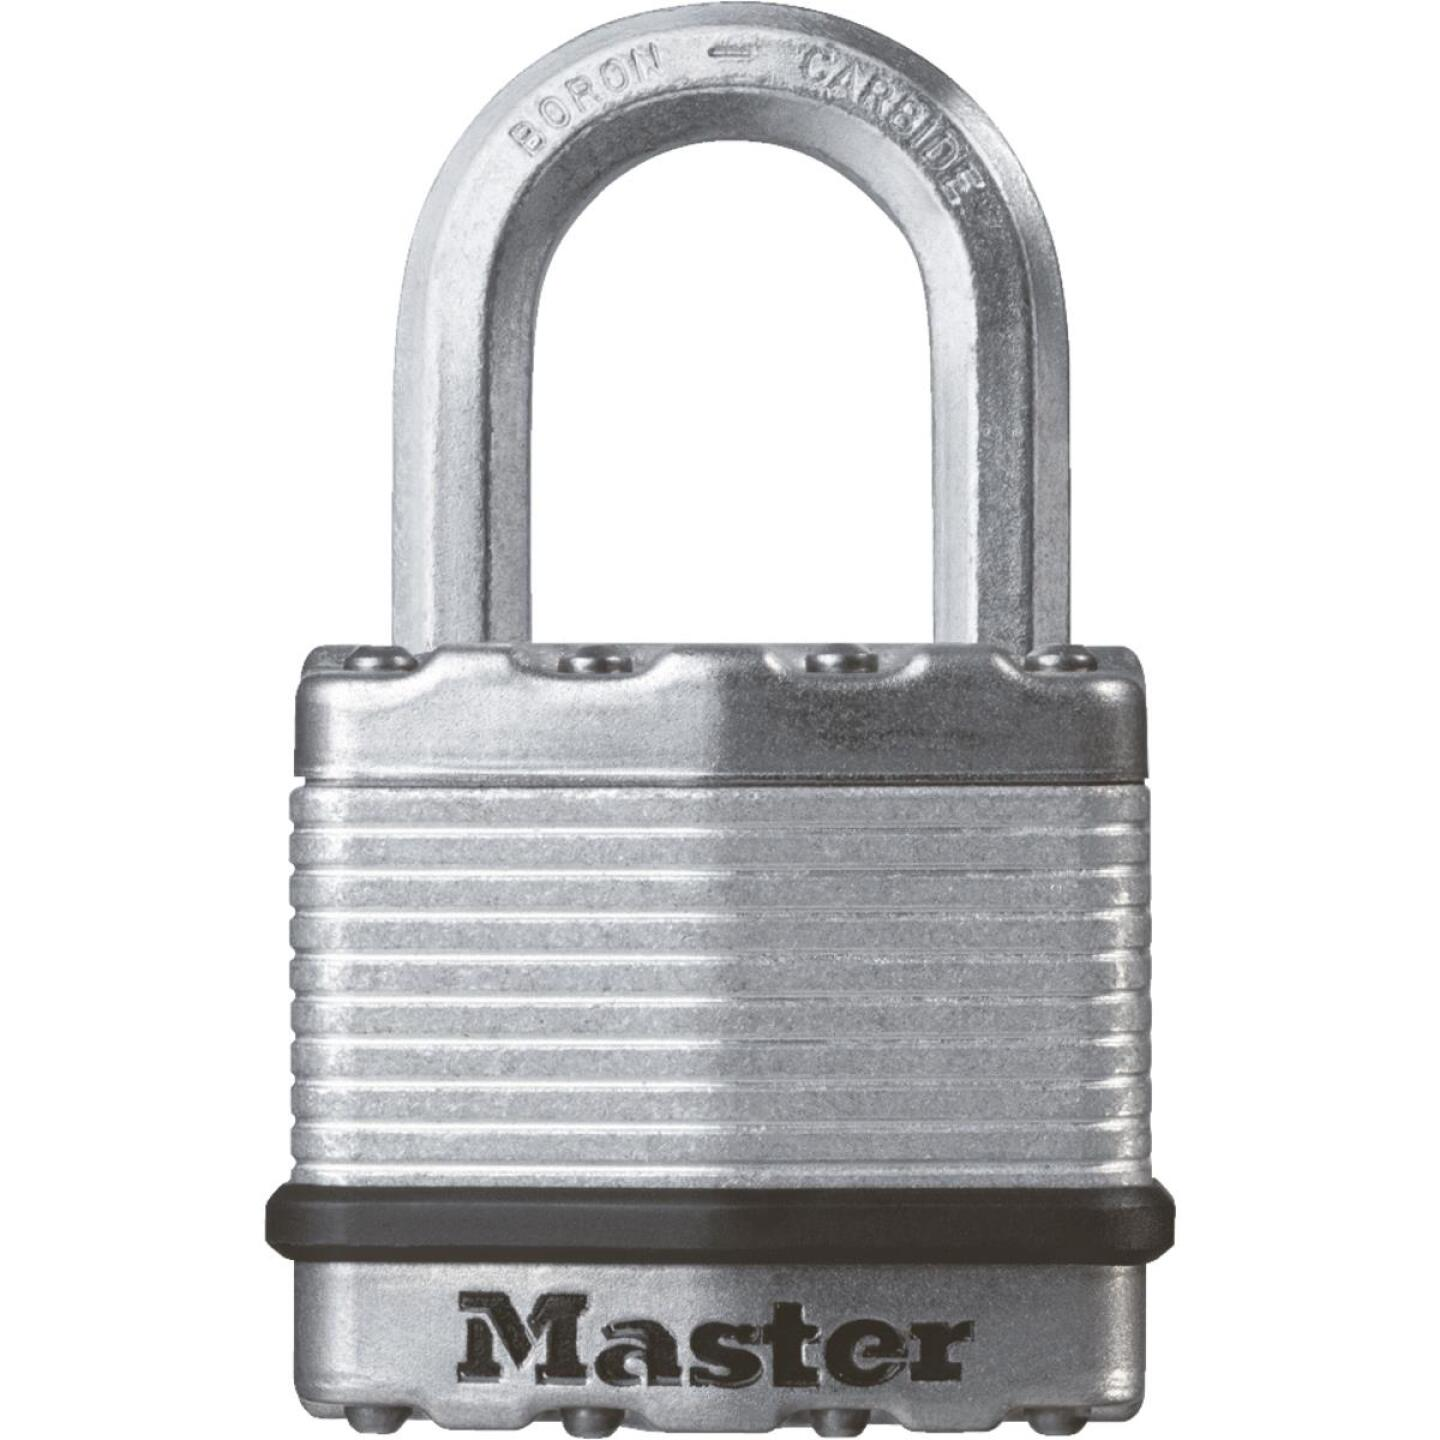 Master Lock Magnum 1-3/4 In. W. Dual-Armor Keyed Alike Padlock with 1 In. L. Shackle Image 1